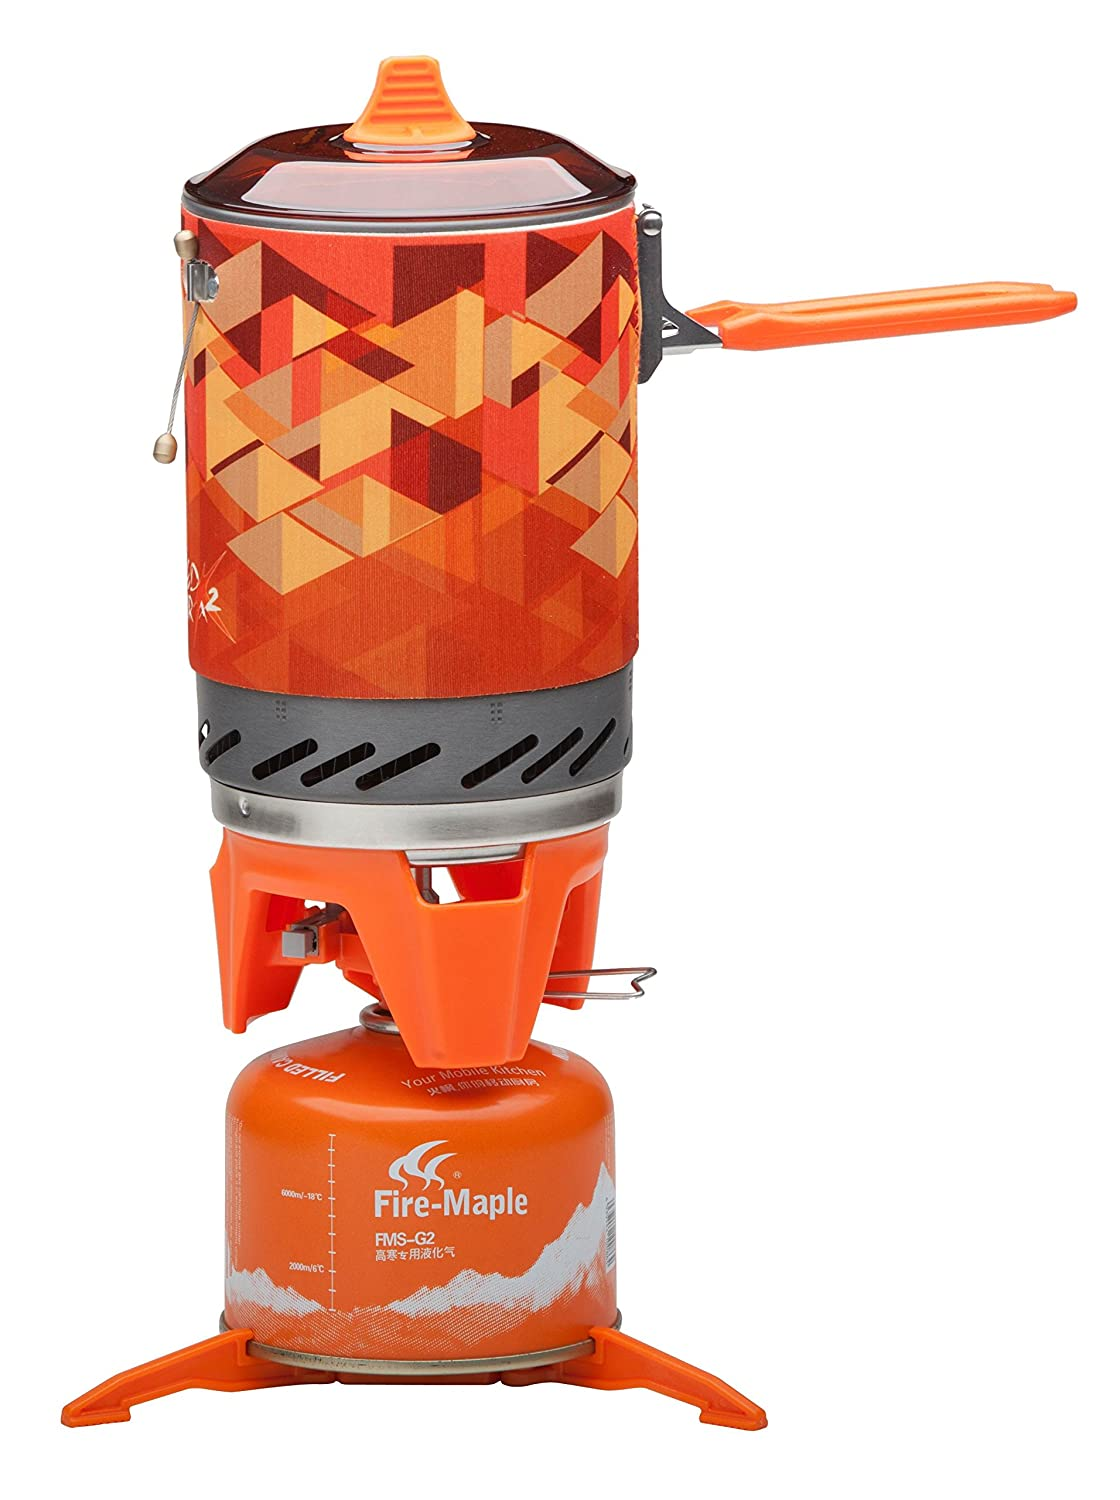 Fire-Maple Fixed-Star 2 Personal Cooking System Stove w Electric Ignition, Pot Support Propane Butane Canister Stand Jet Burner Pot System for Backpacking, Camping, Hiking, or Emergency Stove